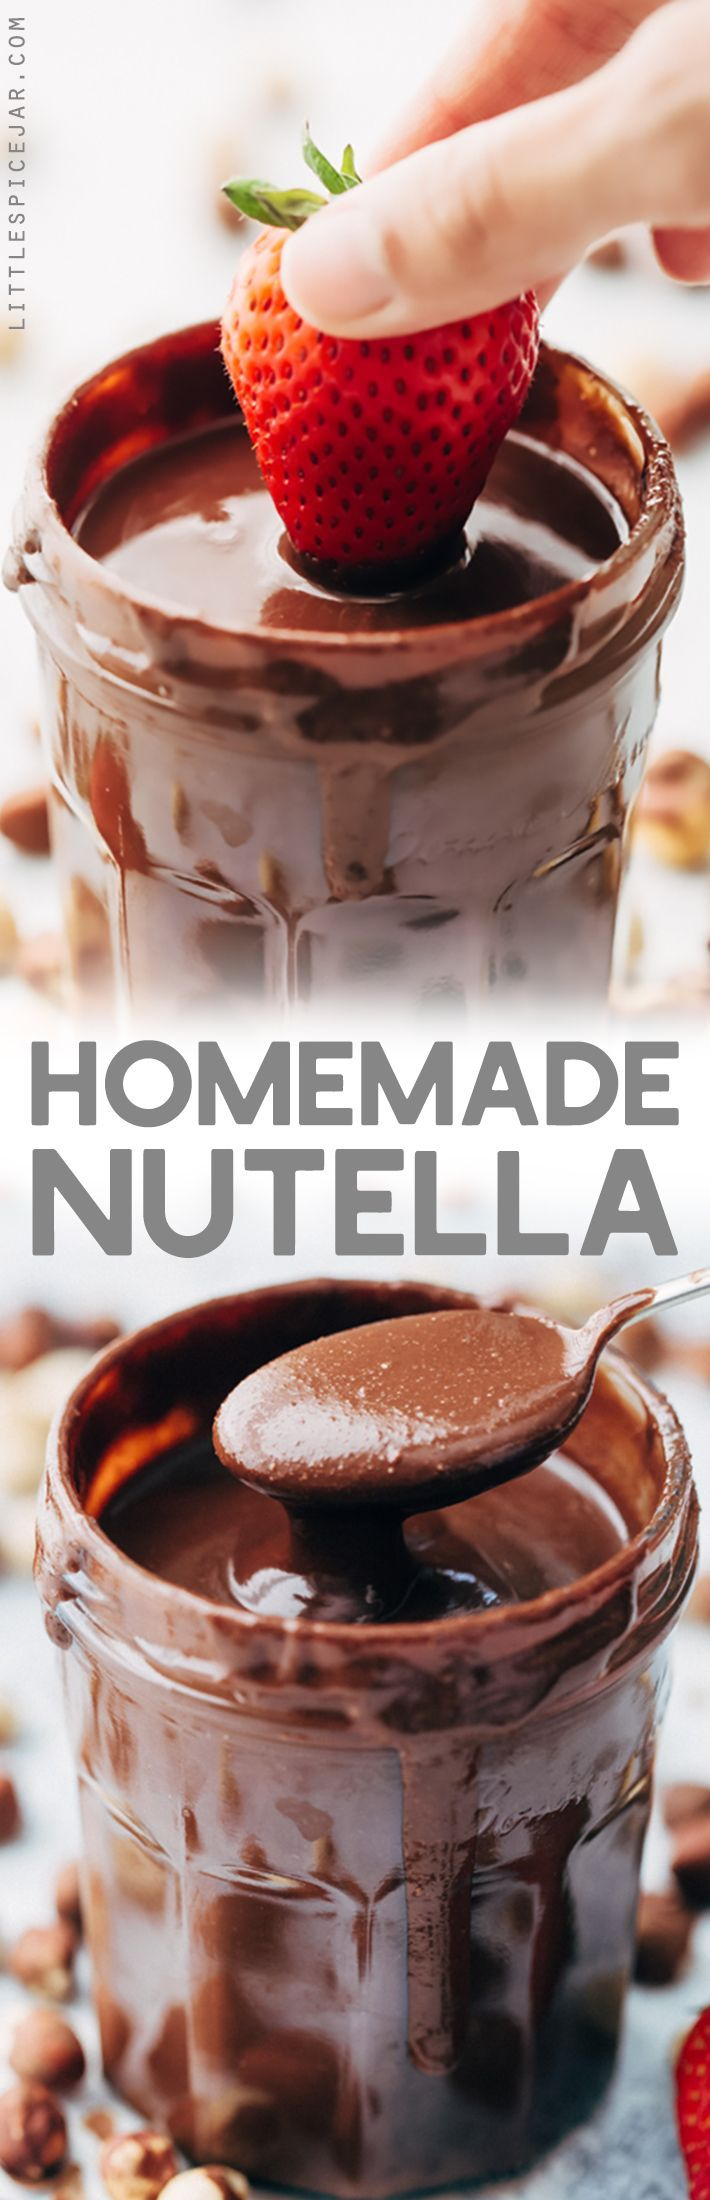 Simple Homemade Nutella - Learn how to make homemade nutella with just 7 simple ingredients! This stuff tastes so much more like hazelnuts than the store bought Nutella! #nutella #hazelnutspread #chocolatehazelnutspread   Littlespicejar.com